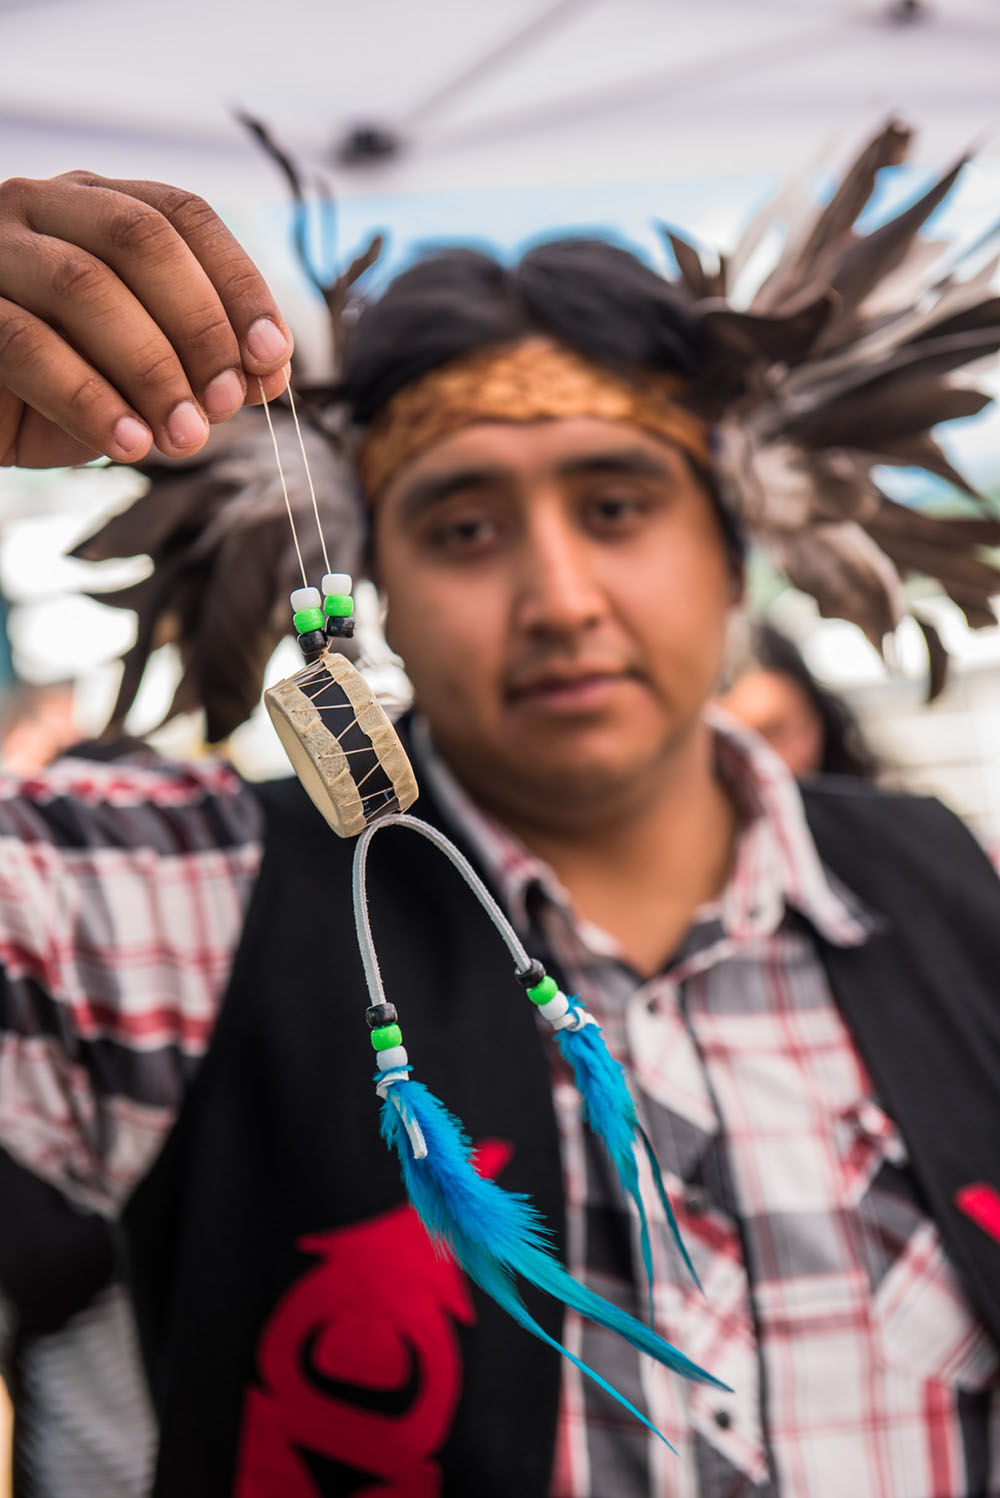 Traditional crafts at National Aboriginal Day in Canada Place (Port of Vancouver)